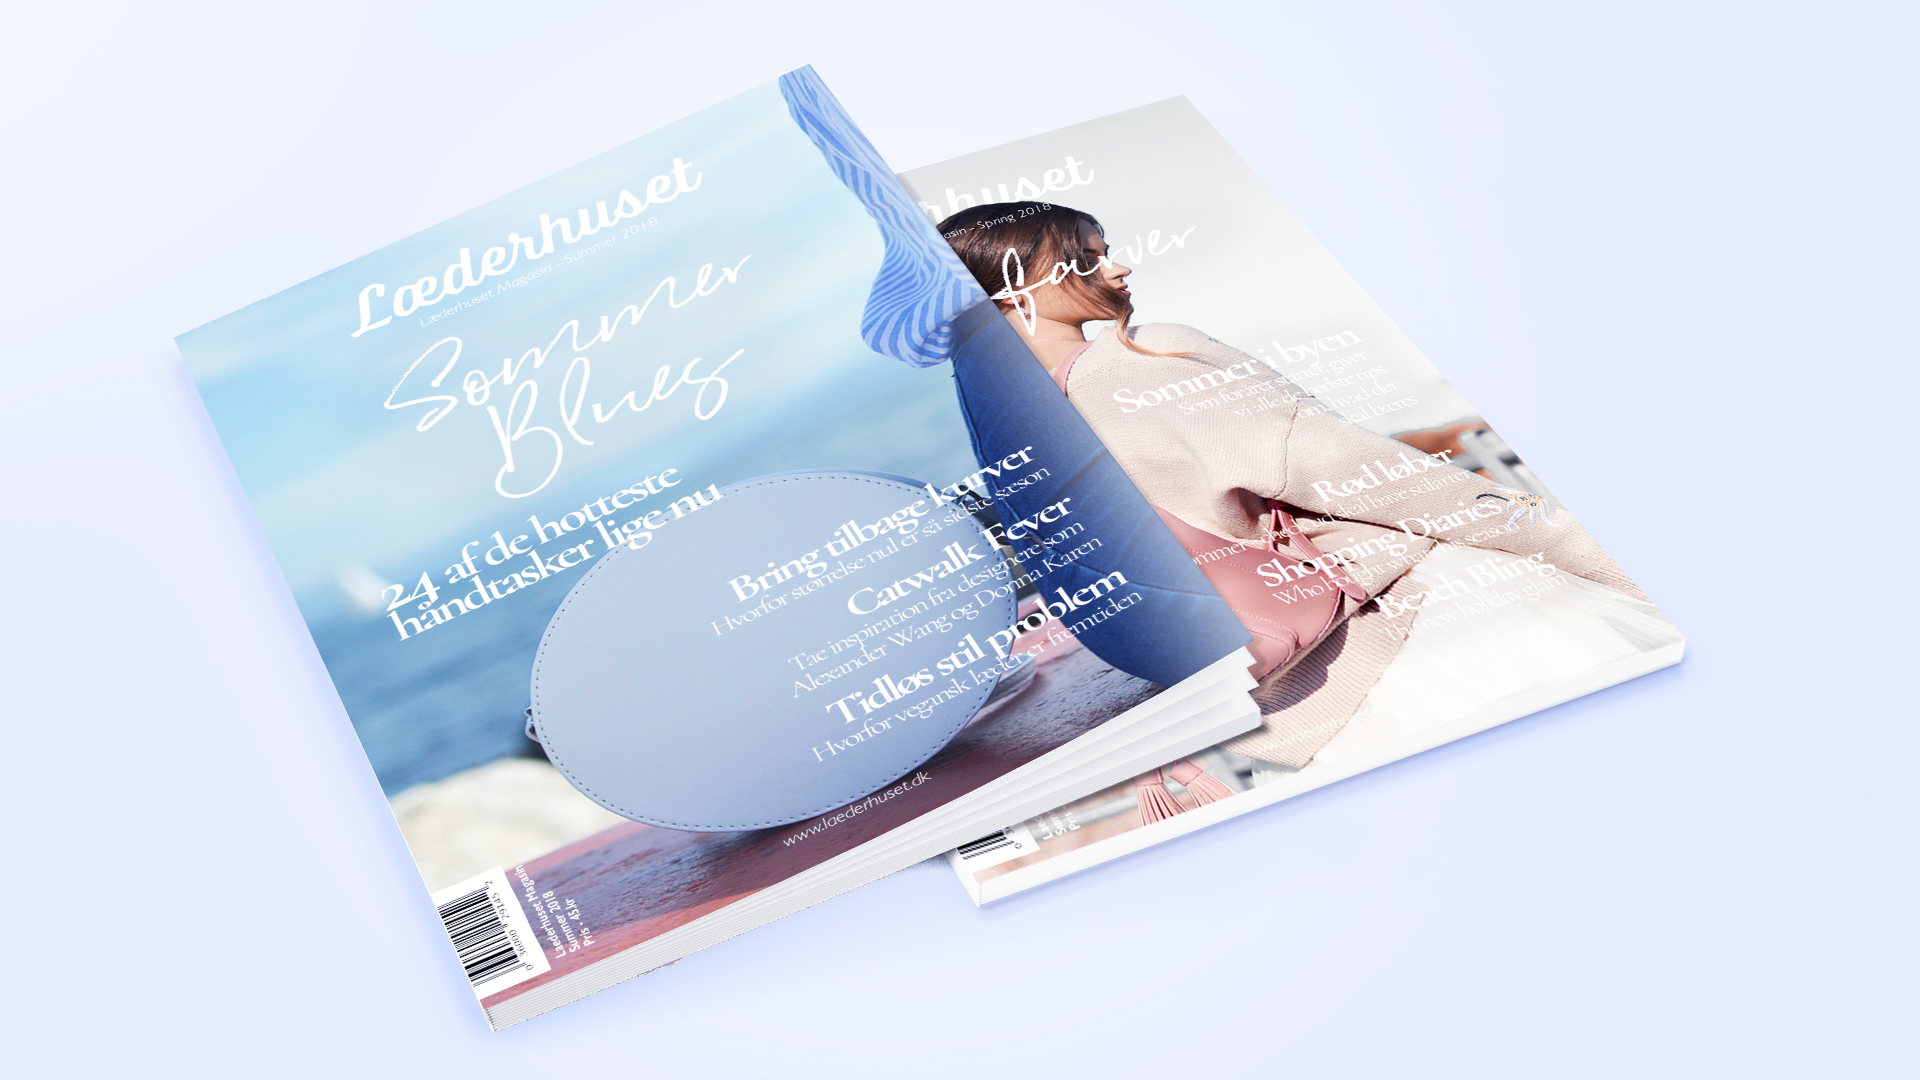 Laederhuset Magazine Cover - THAT Branding Company - Creative Design and Branding Agency in Newcastle and Gateshead.png